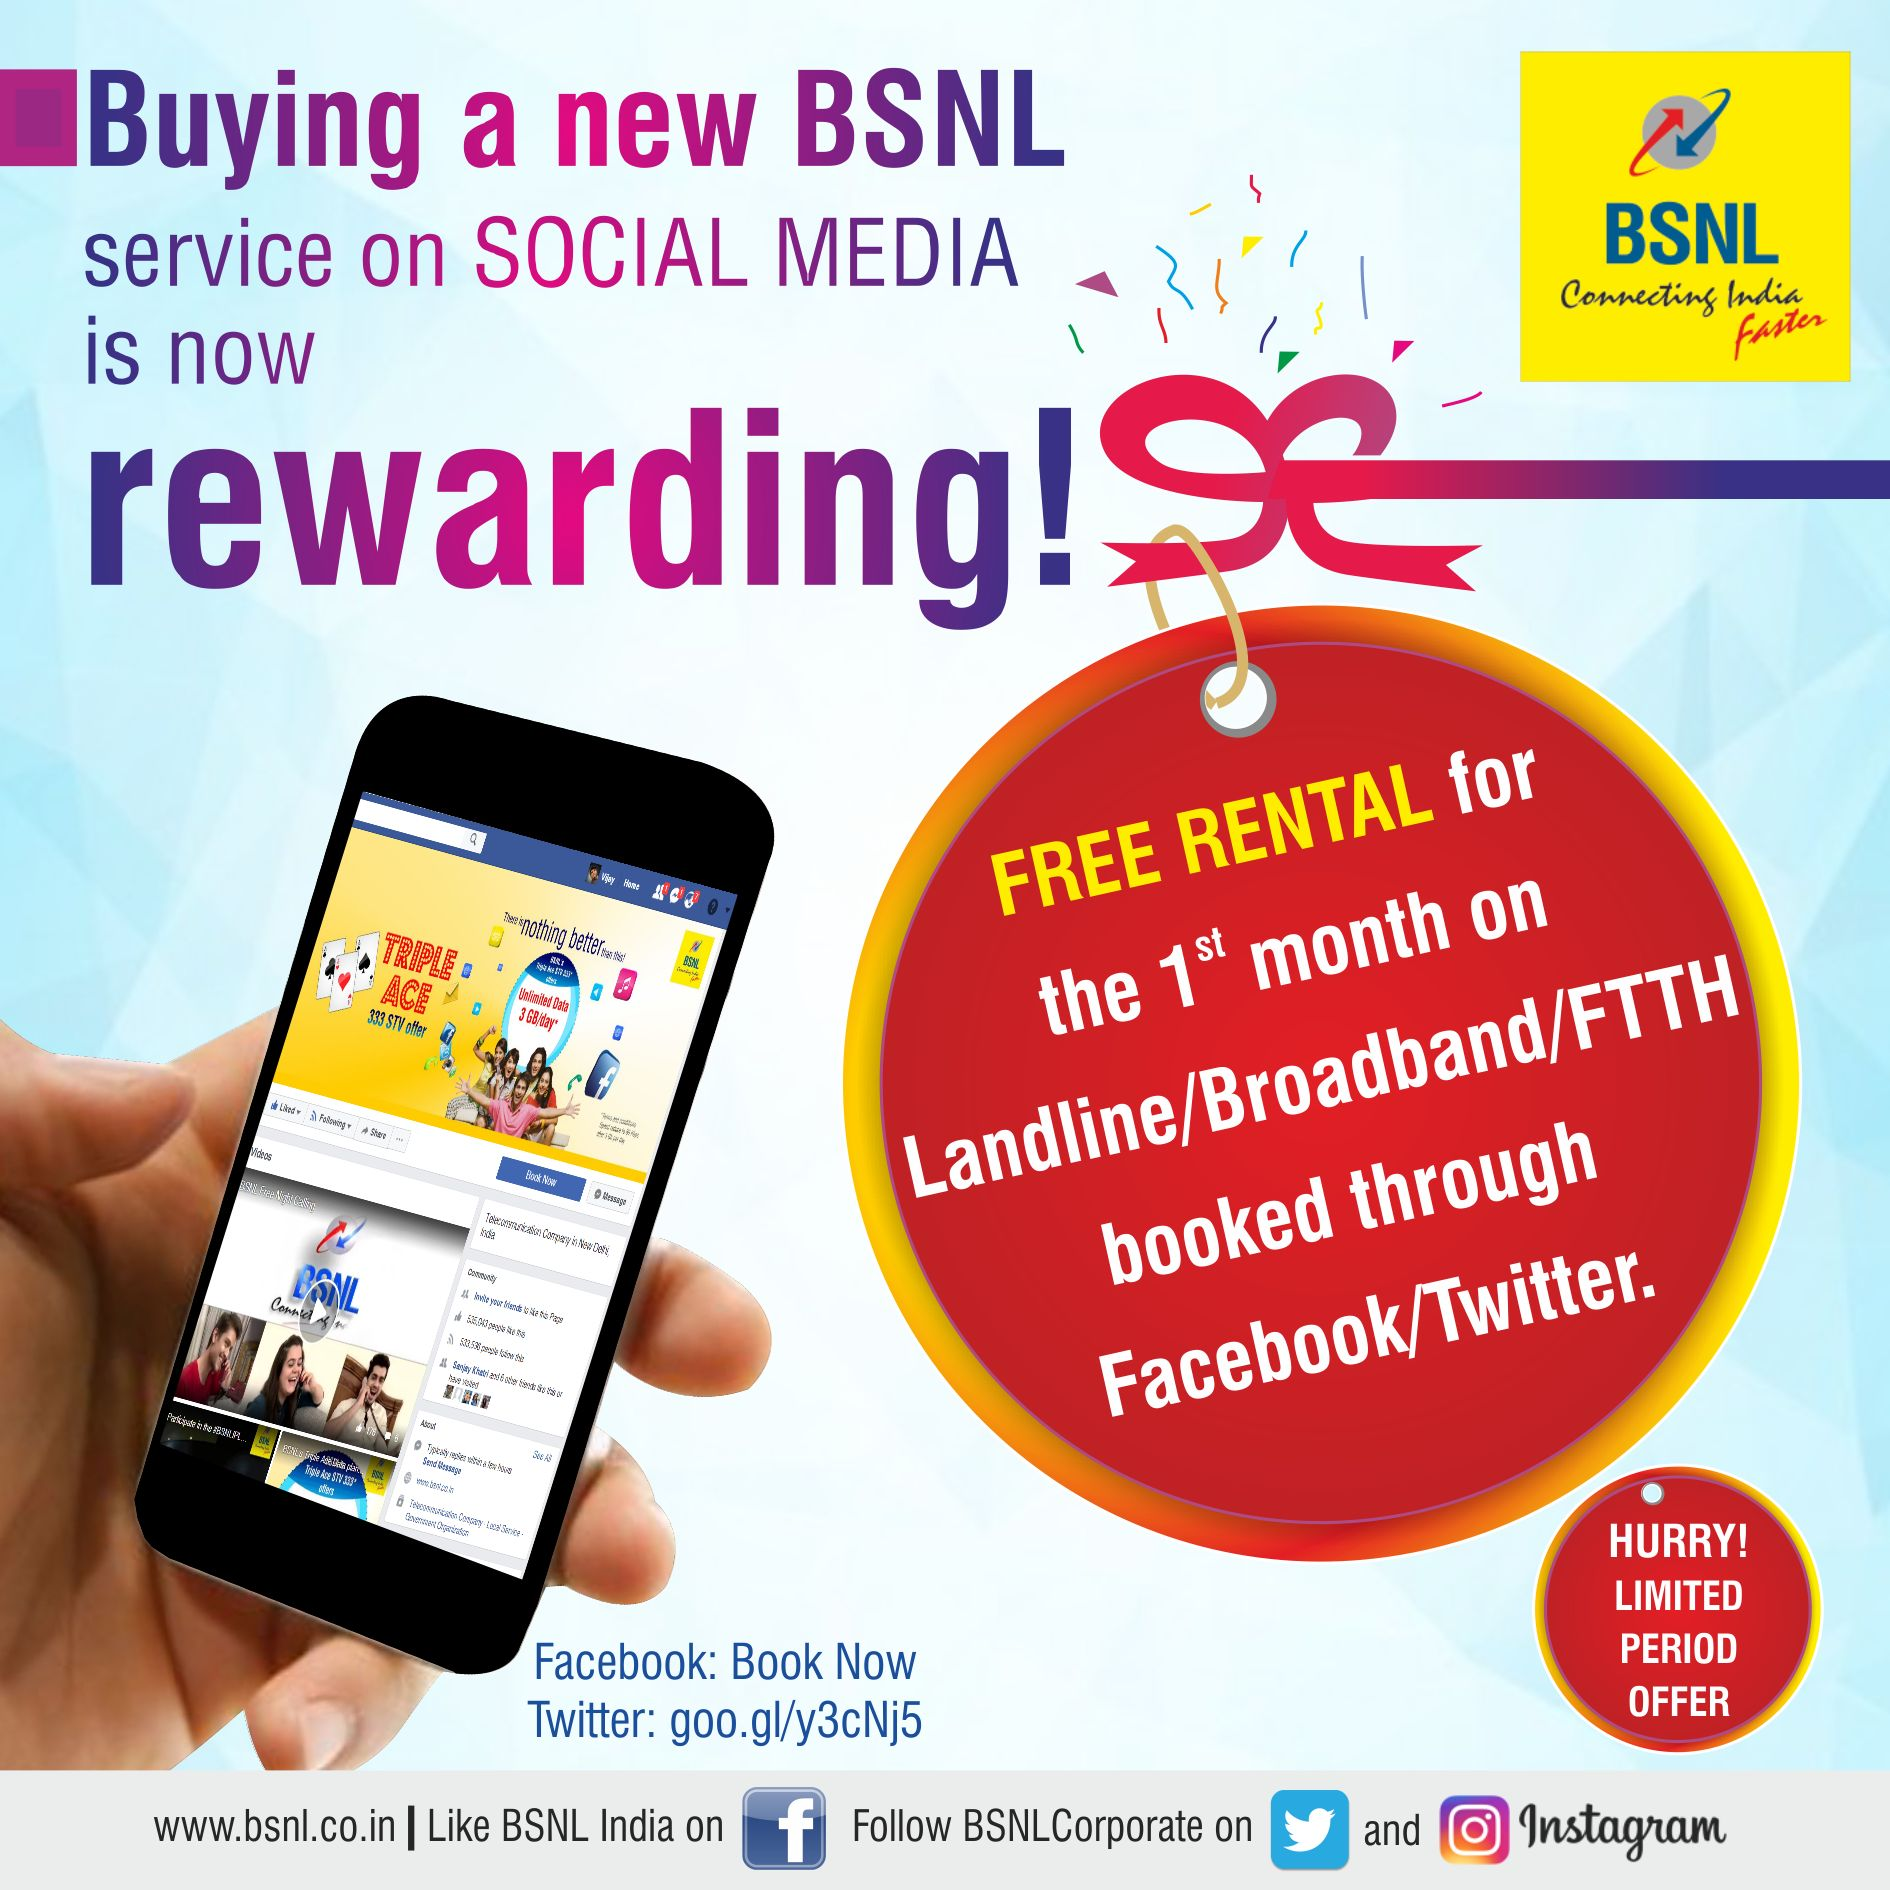 bsnl-one-month-free-service